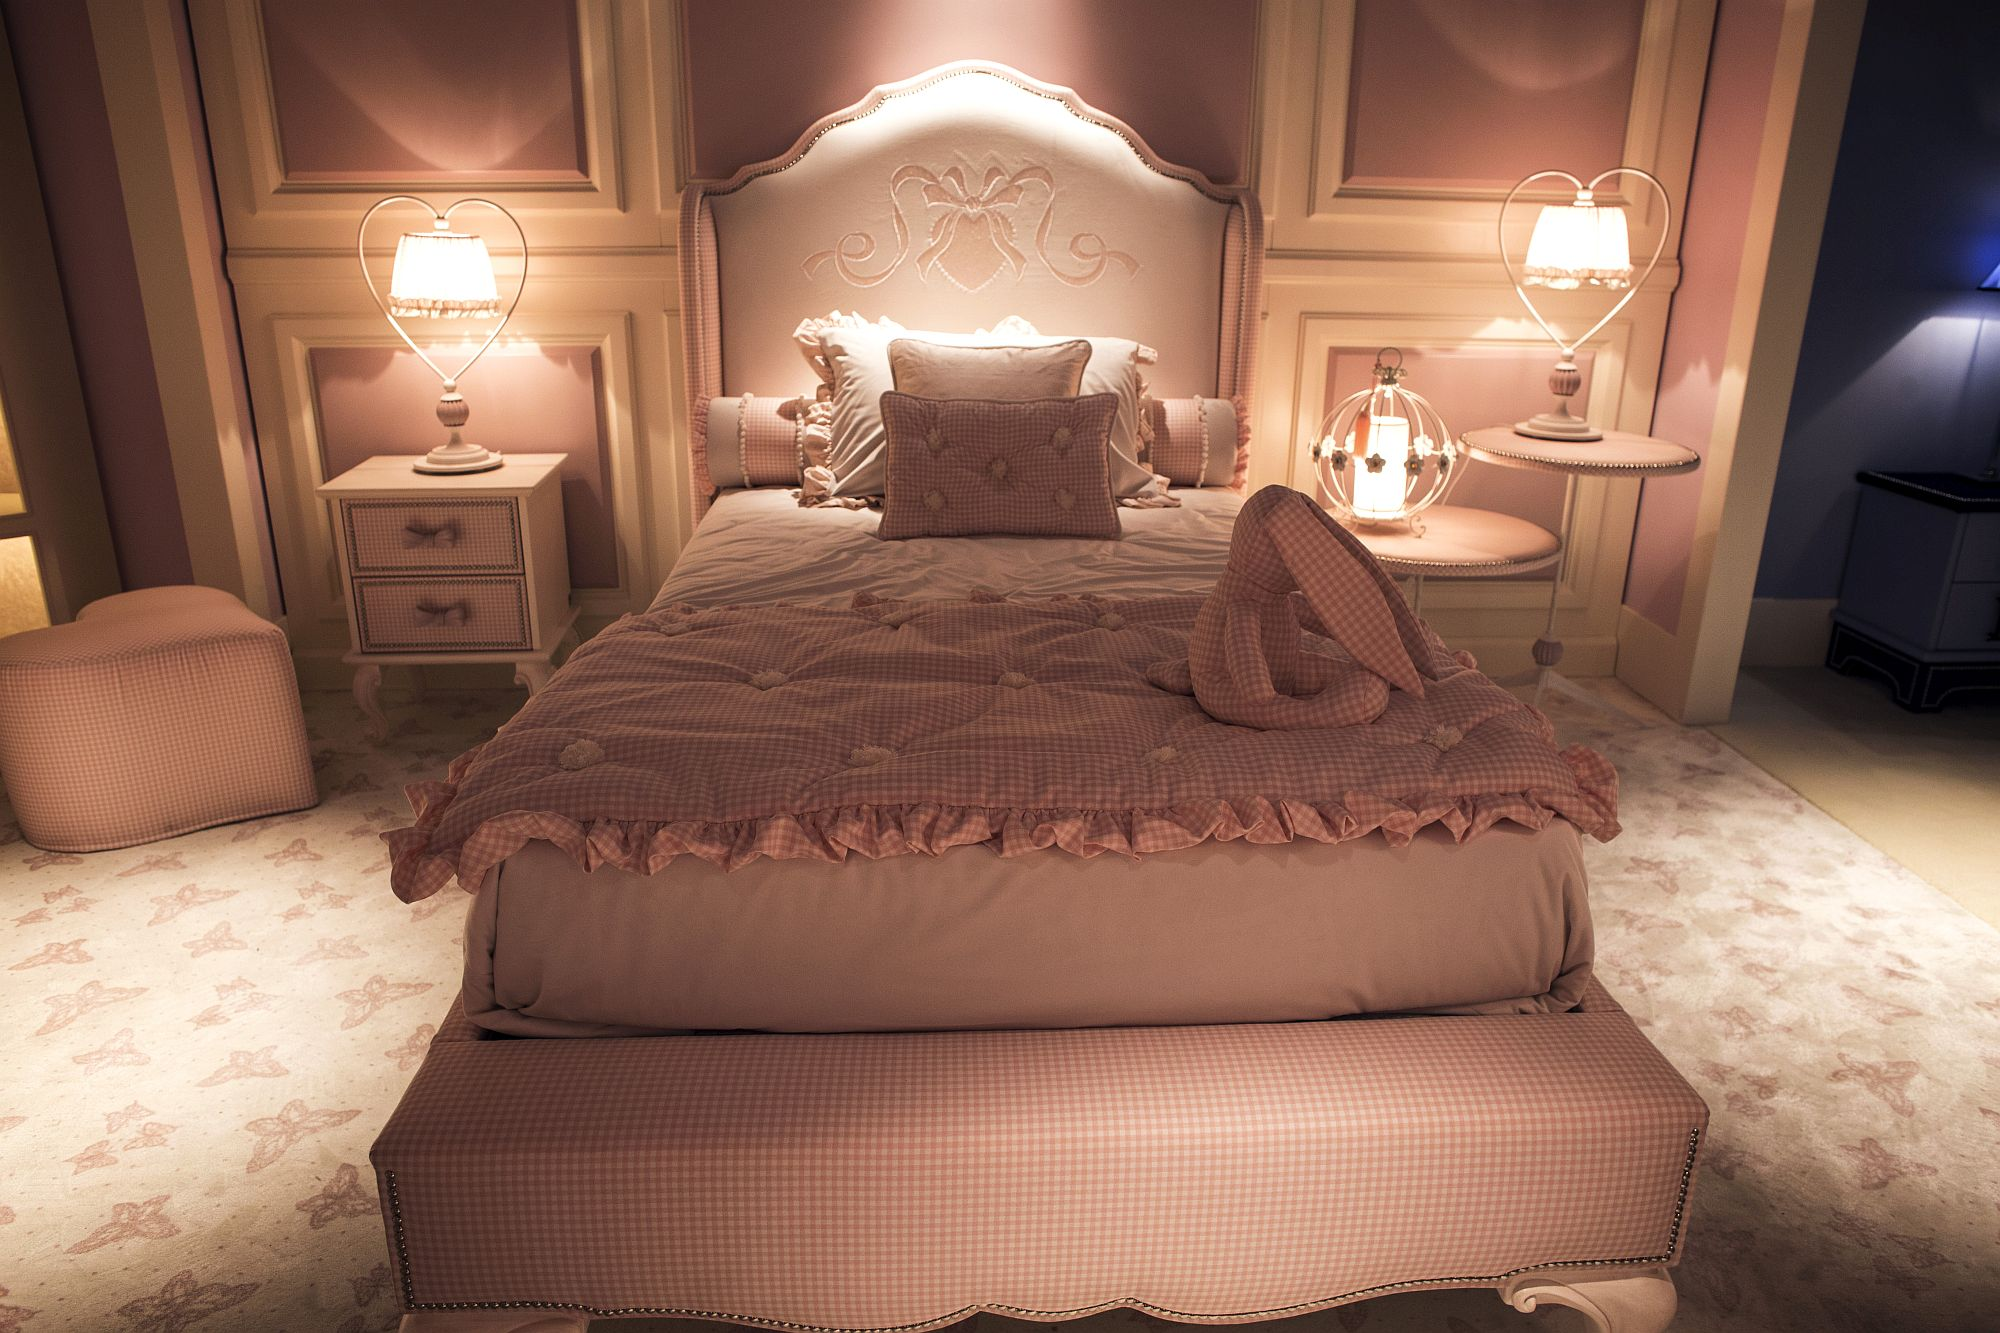 Fabulous girls' bedroom with an overload of pink